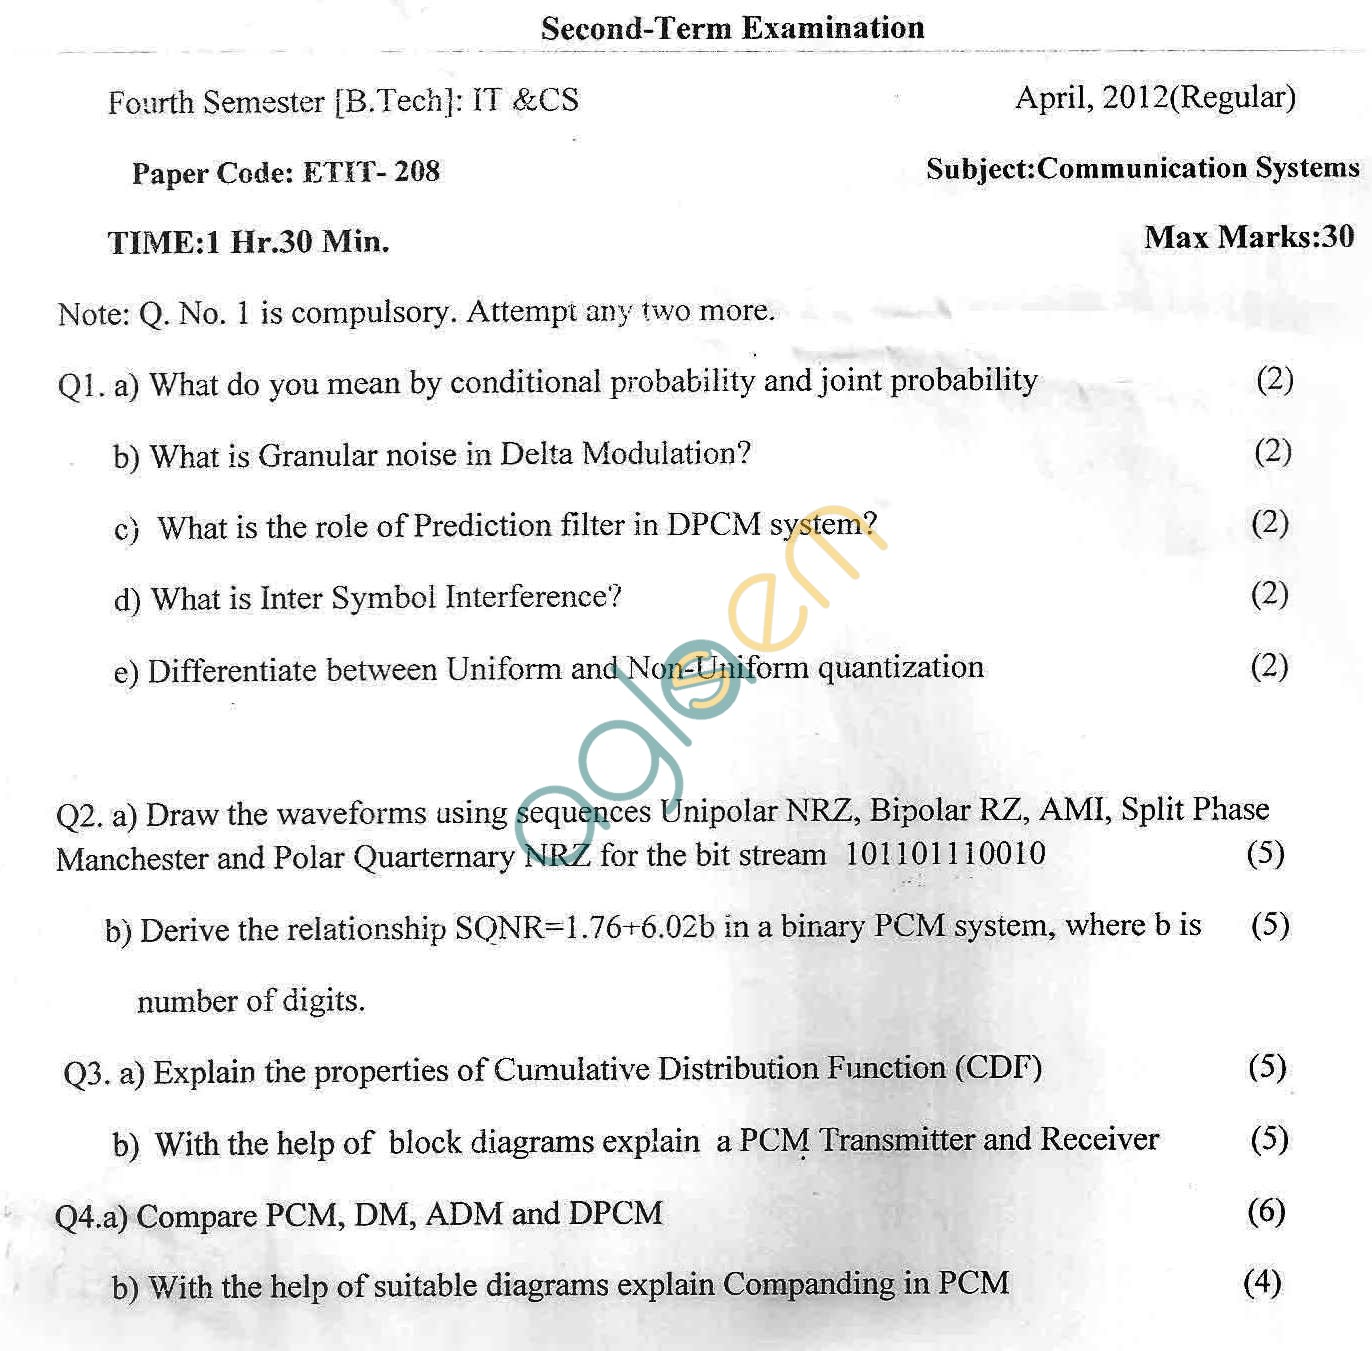 GGSIPU Question Papers Fourth Semester – Second Term 2012 – ETIT-208